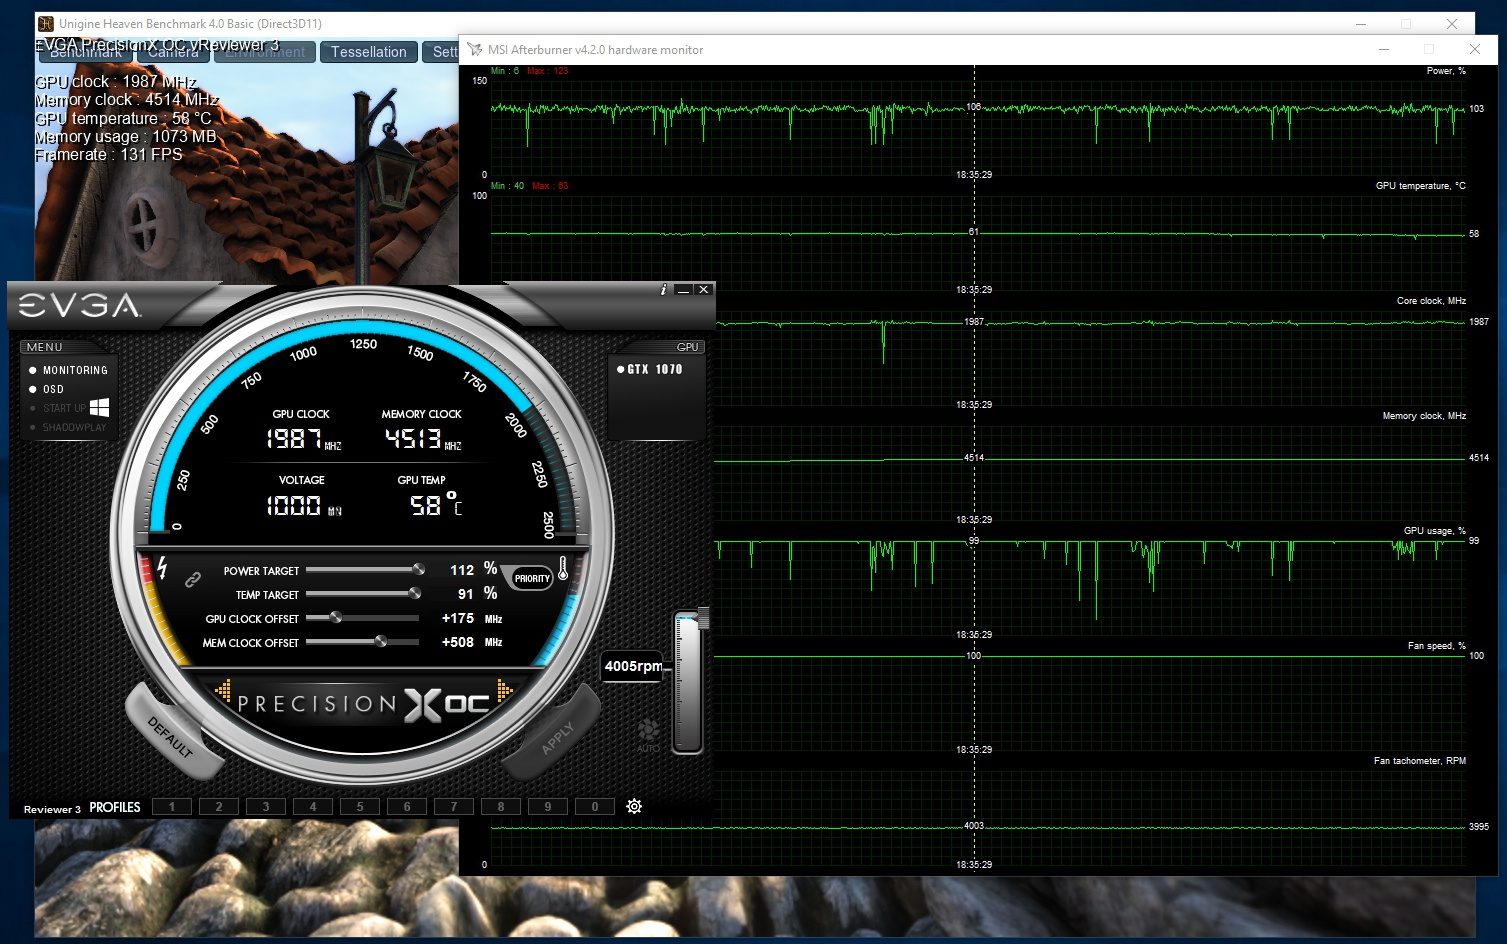 GTX 1070 Founders Edition Overclocking